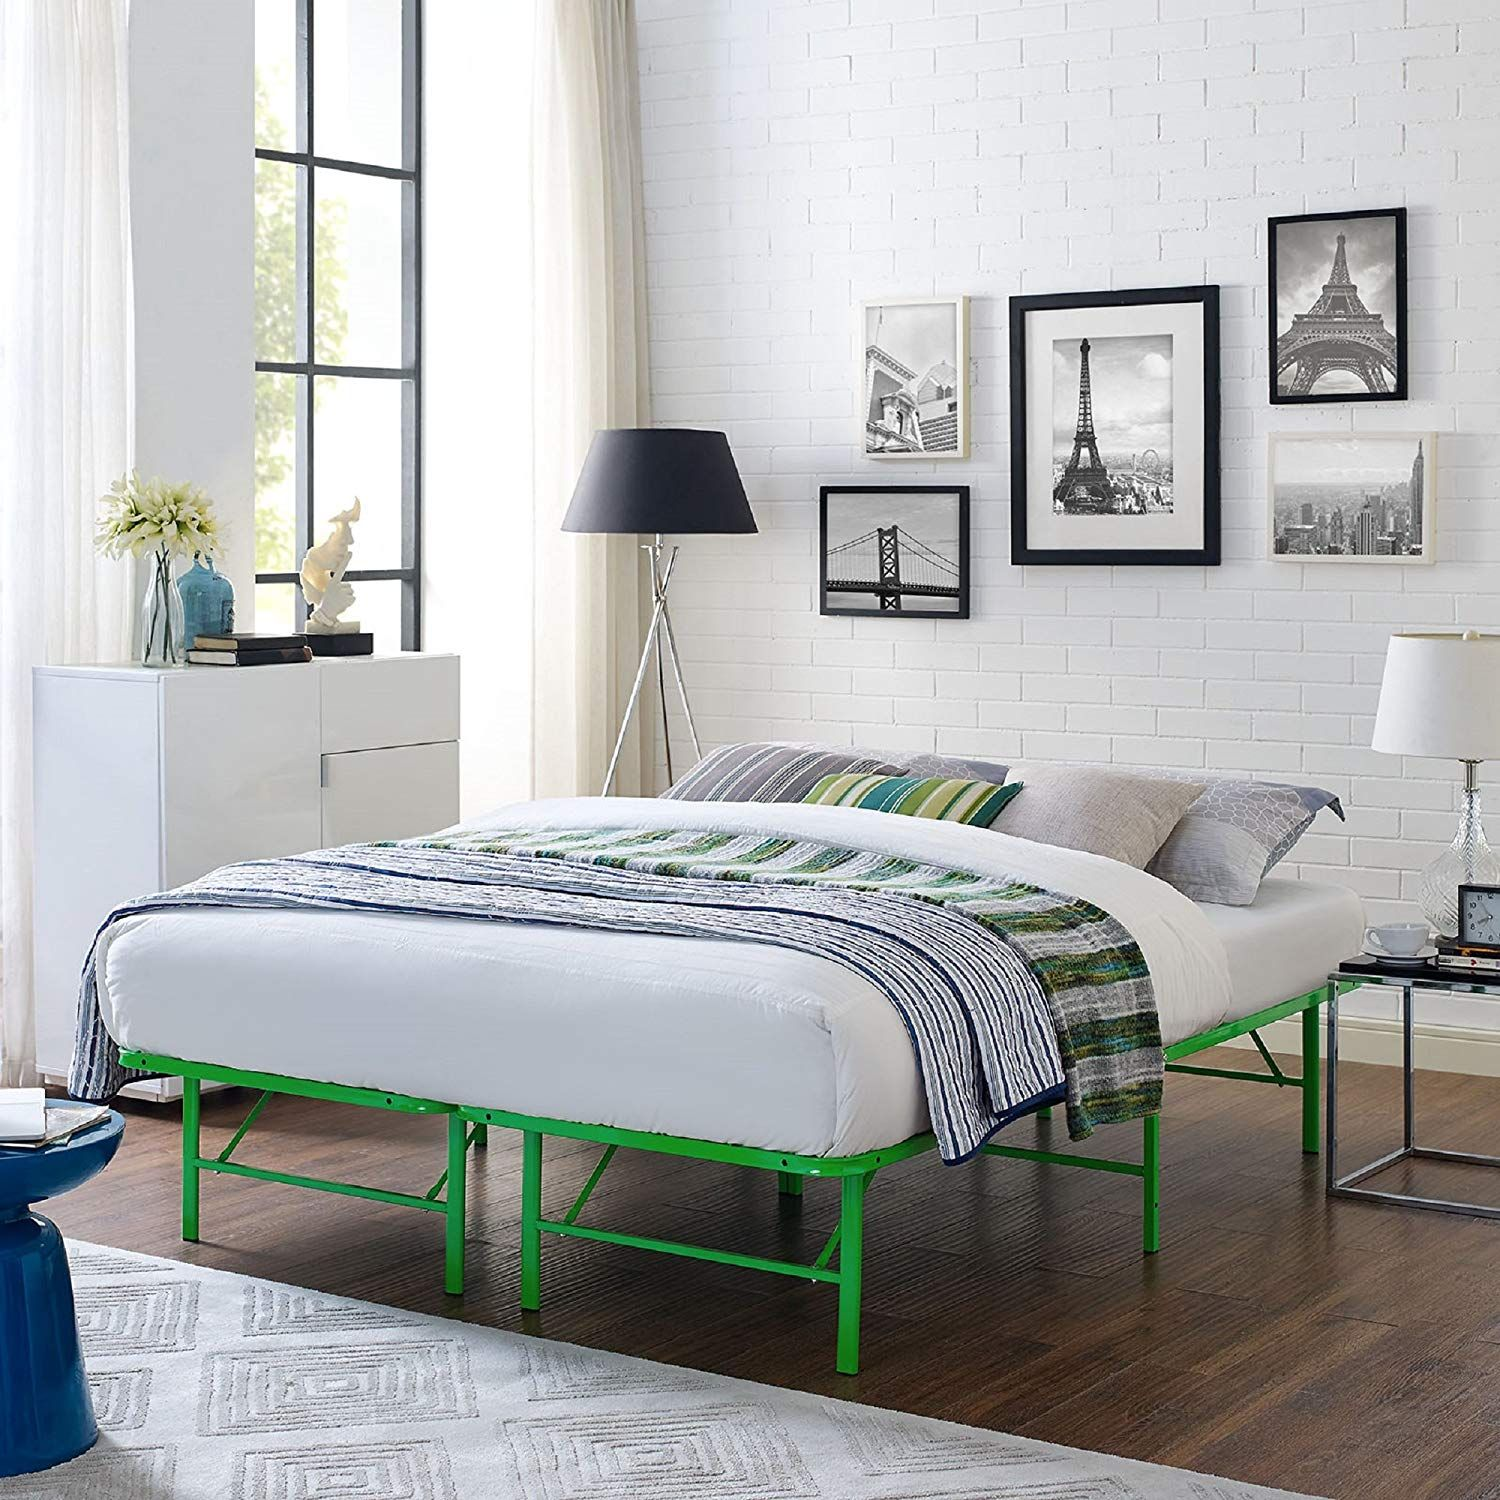 Amazon Com Modway Horizon Queen Bed Frame In White Replaces Box